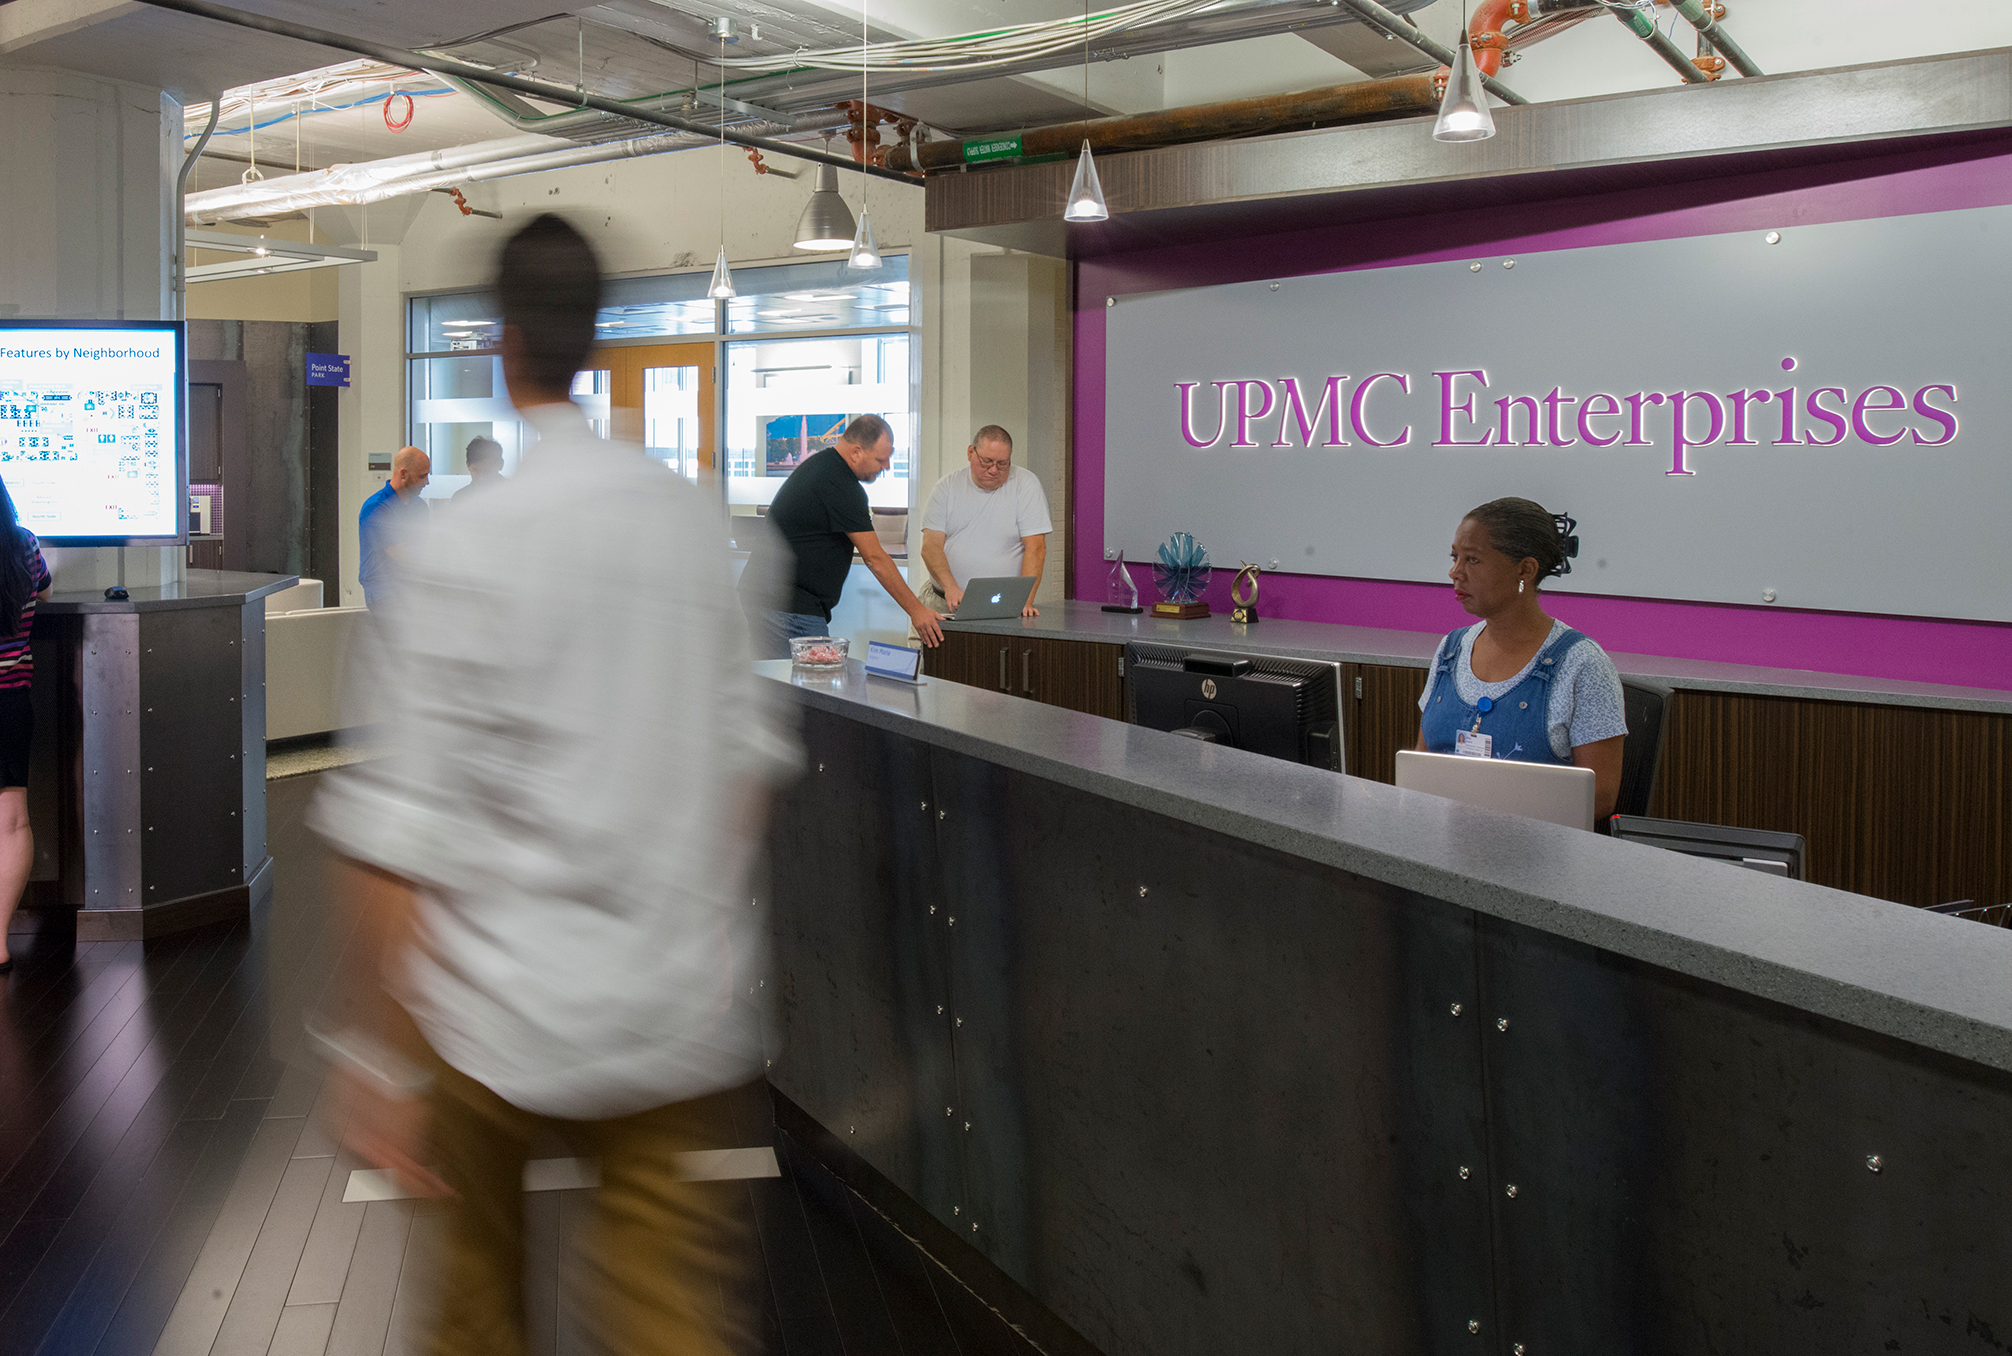 UPMC enterprises